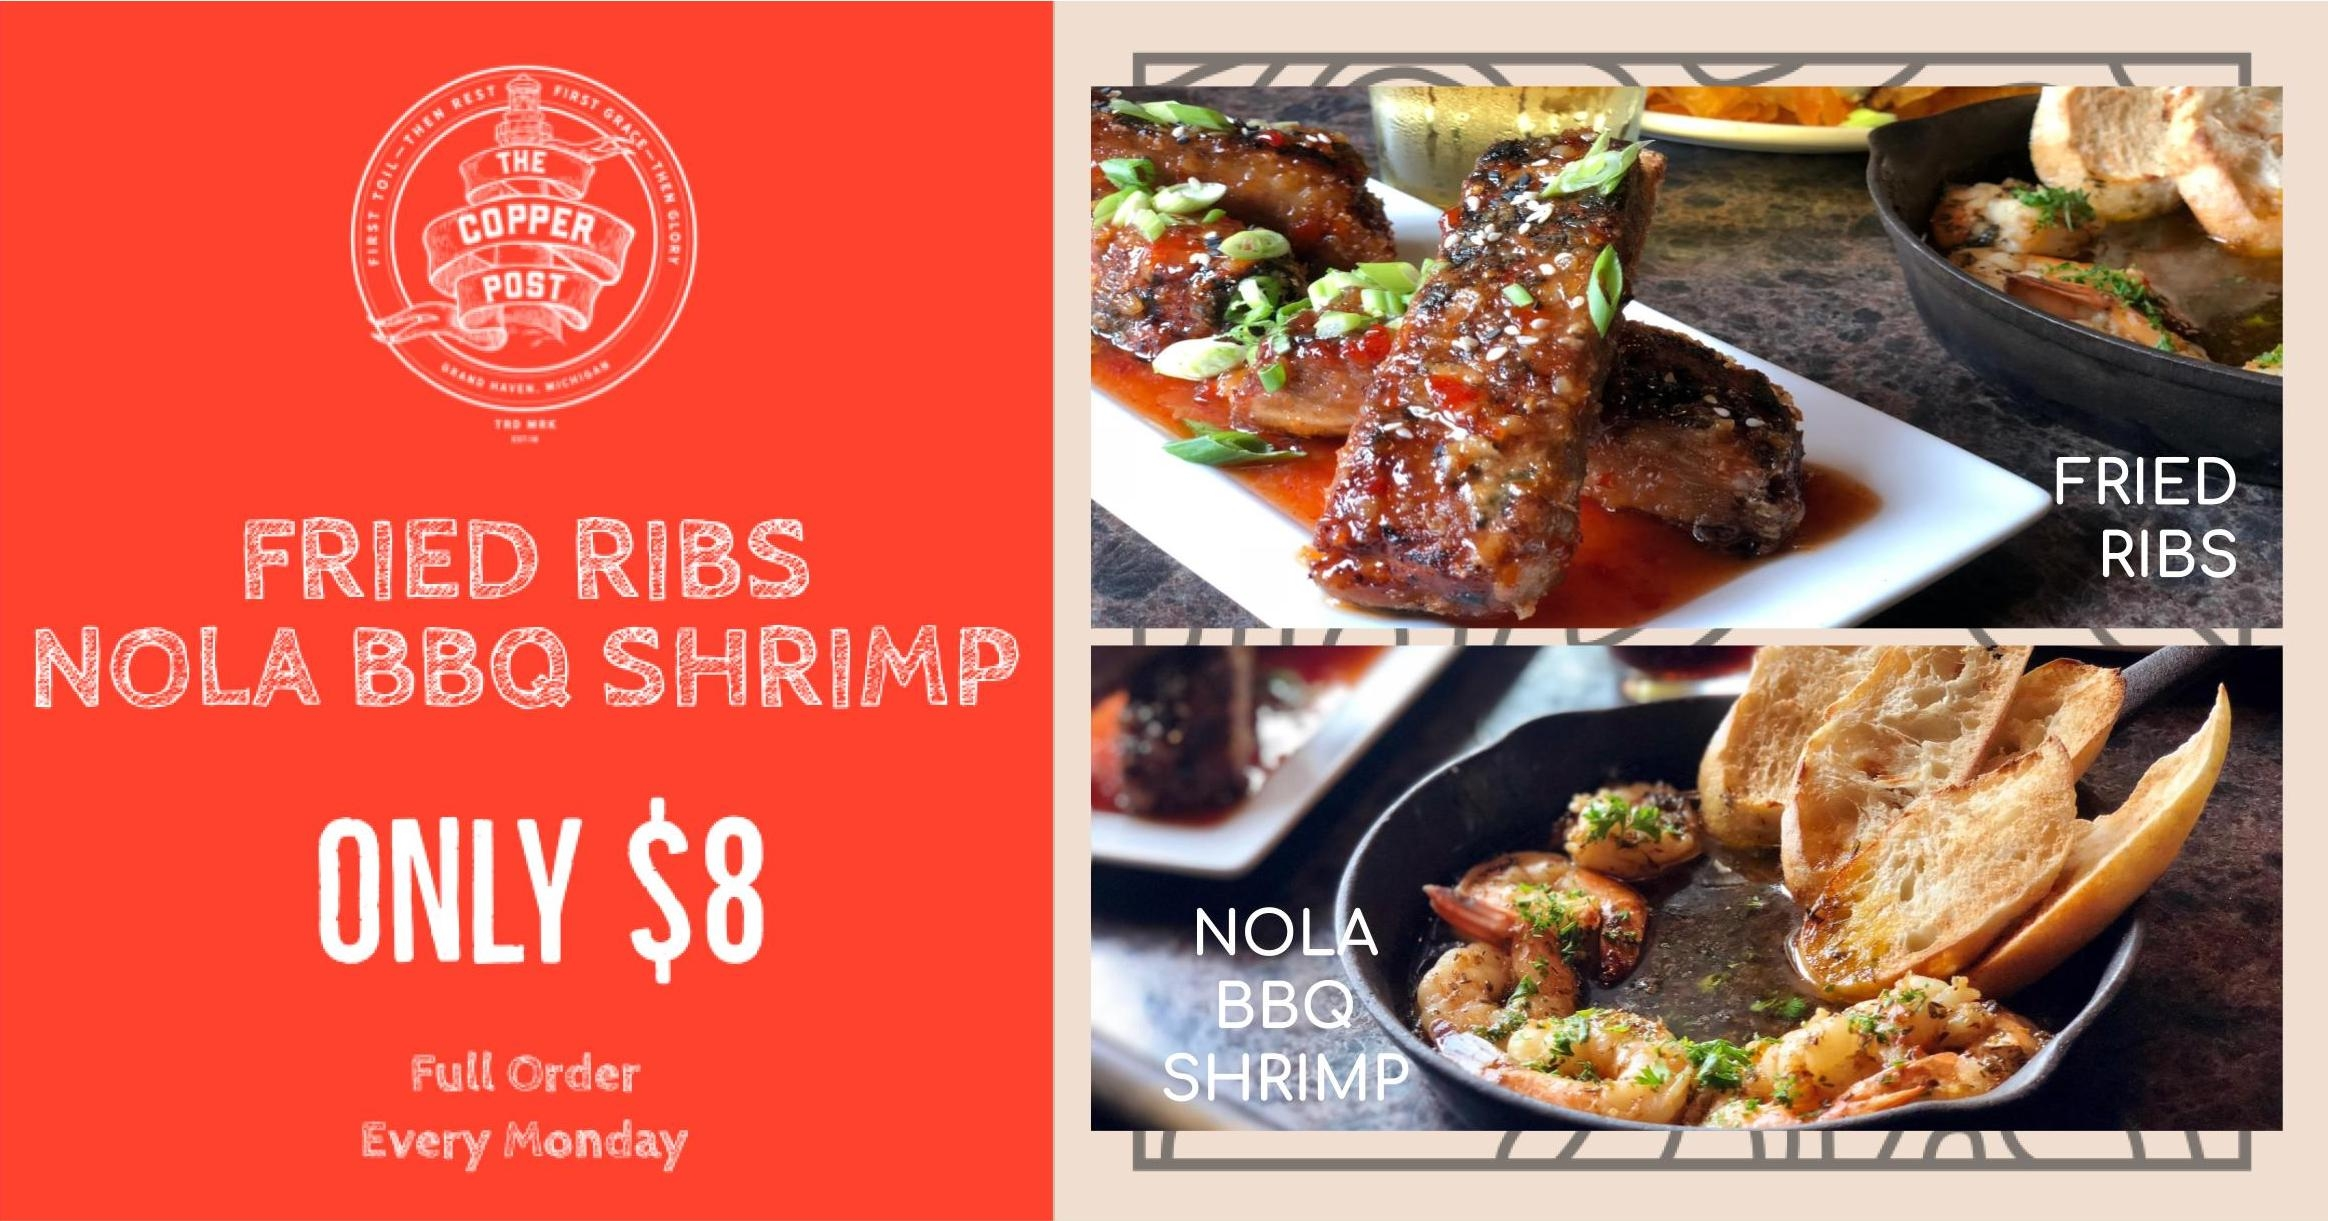 Fried Ribs & NOLA BBQ Shrimp